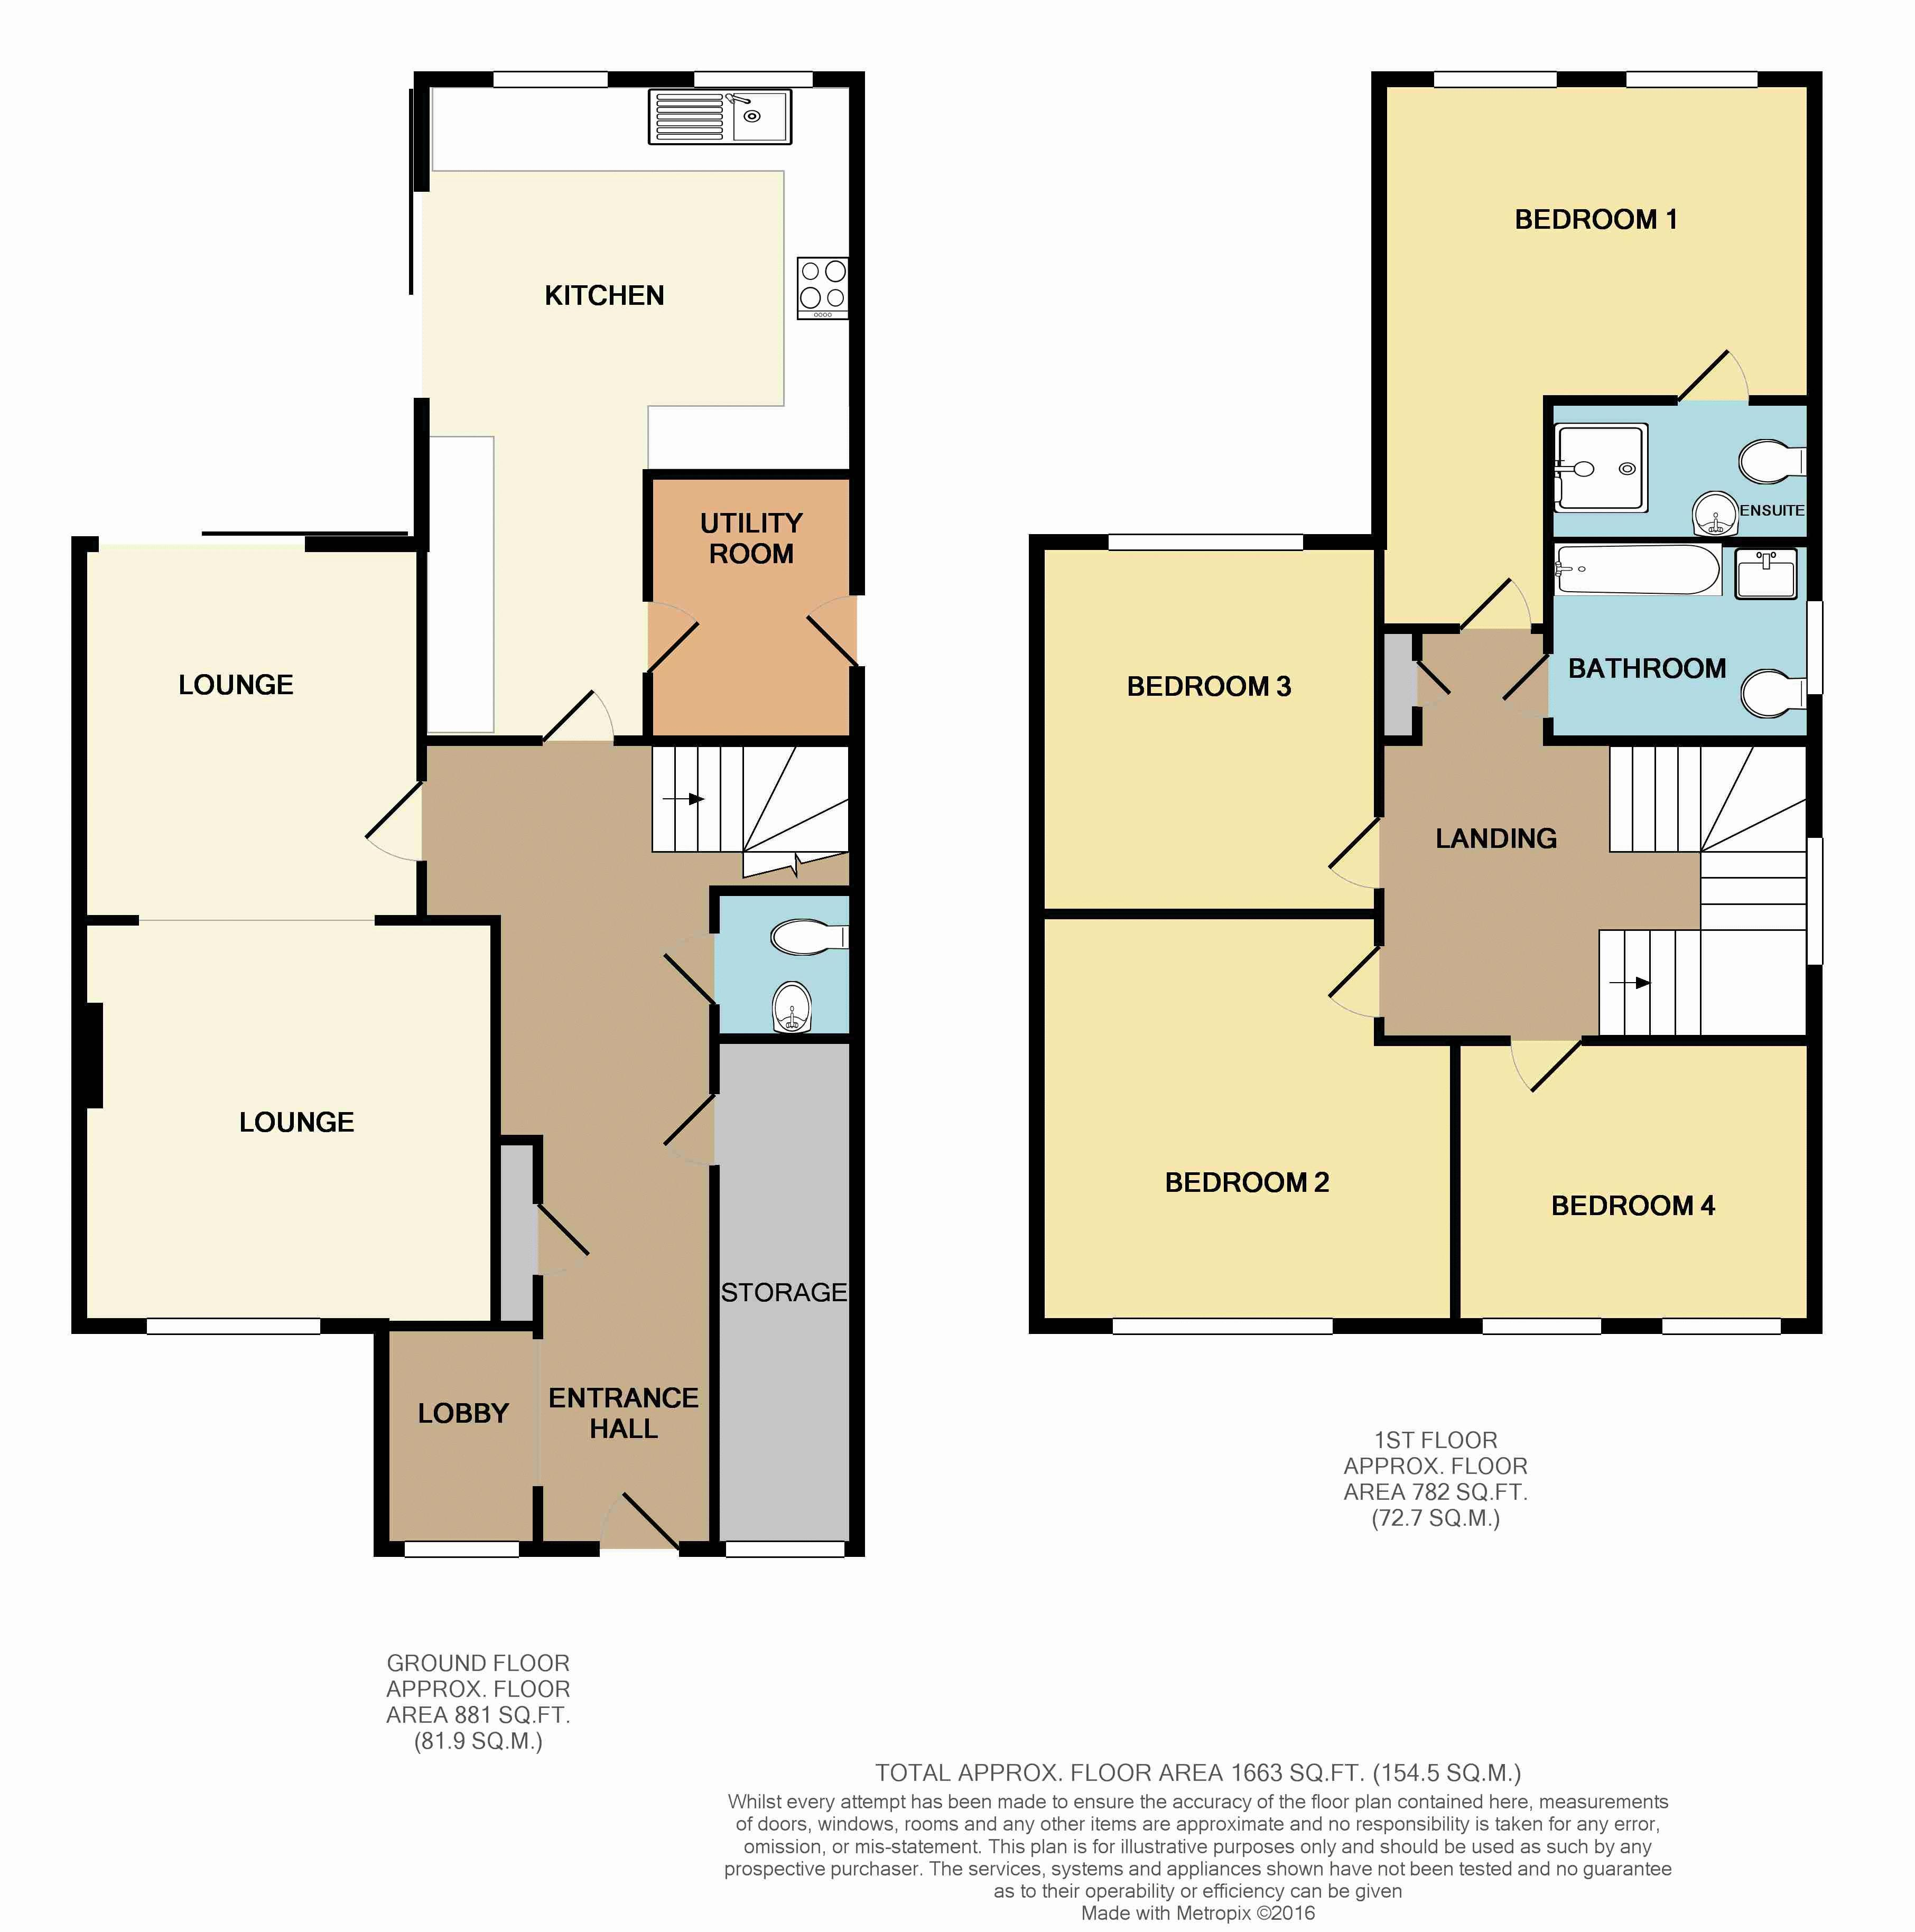 4 bedroom detached house for sale in luton for How much is a bedroom worth in an appraisal